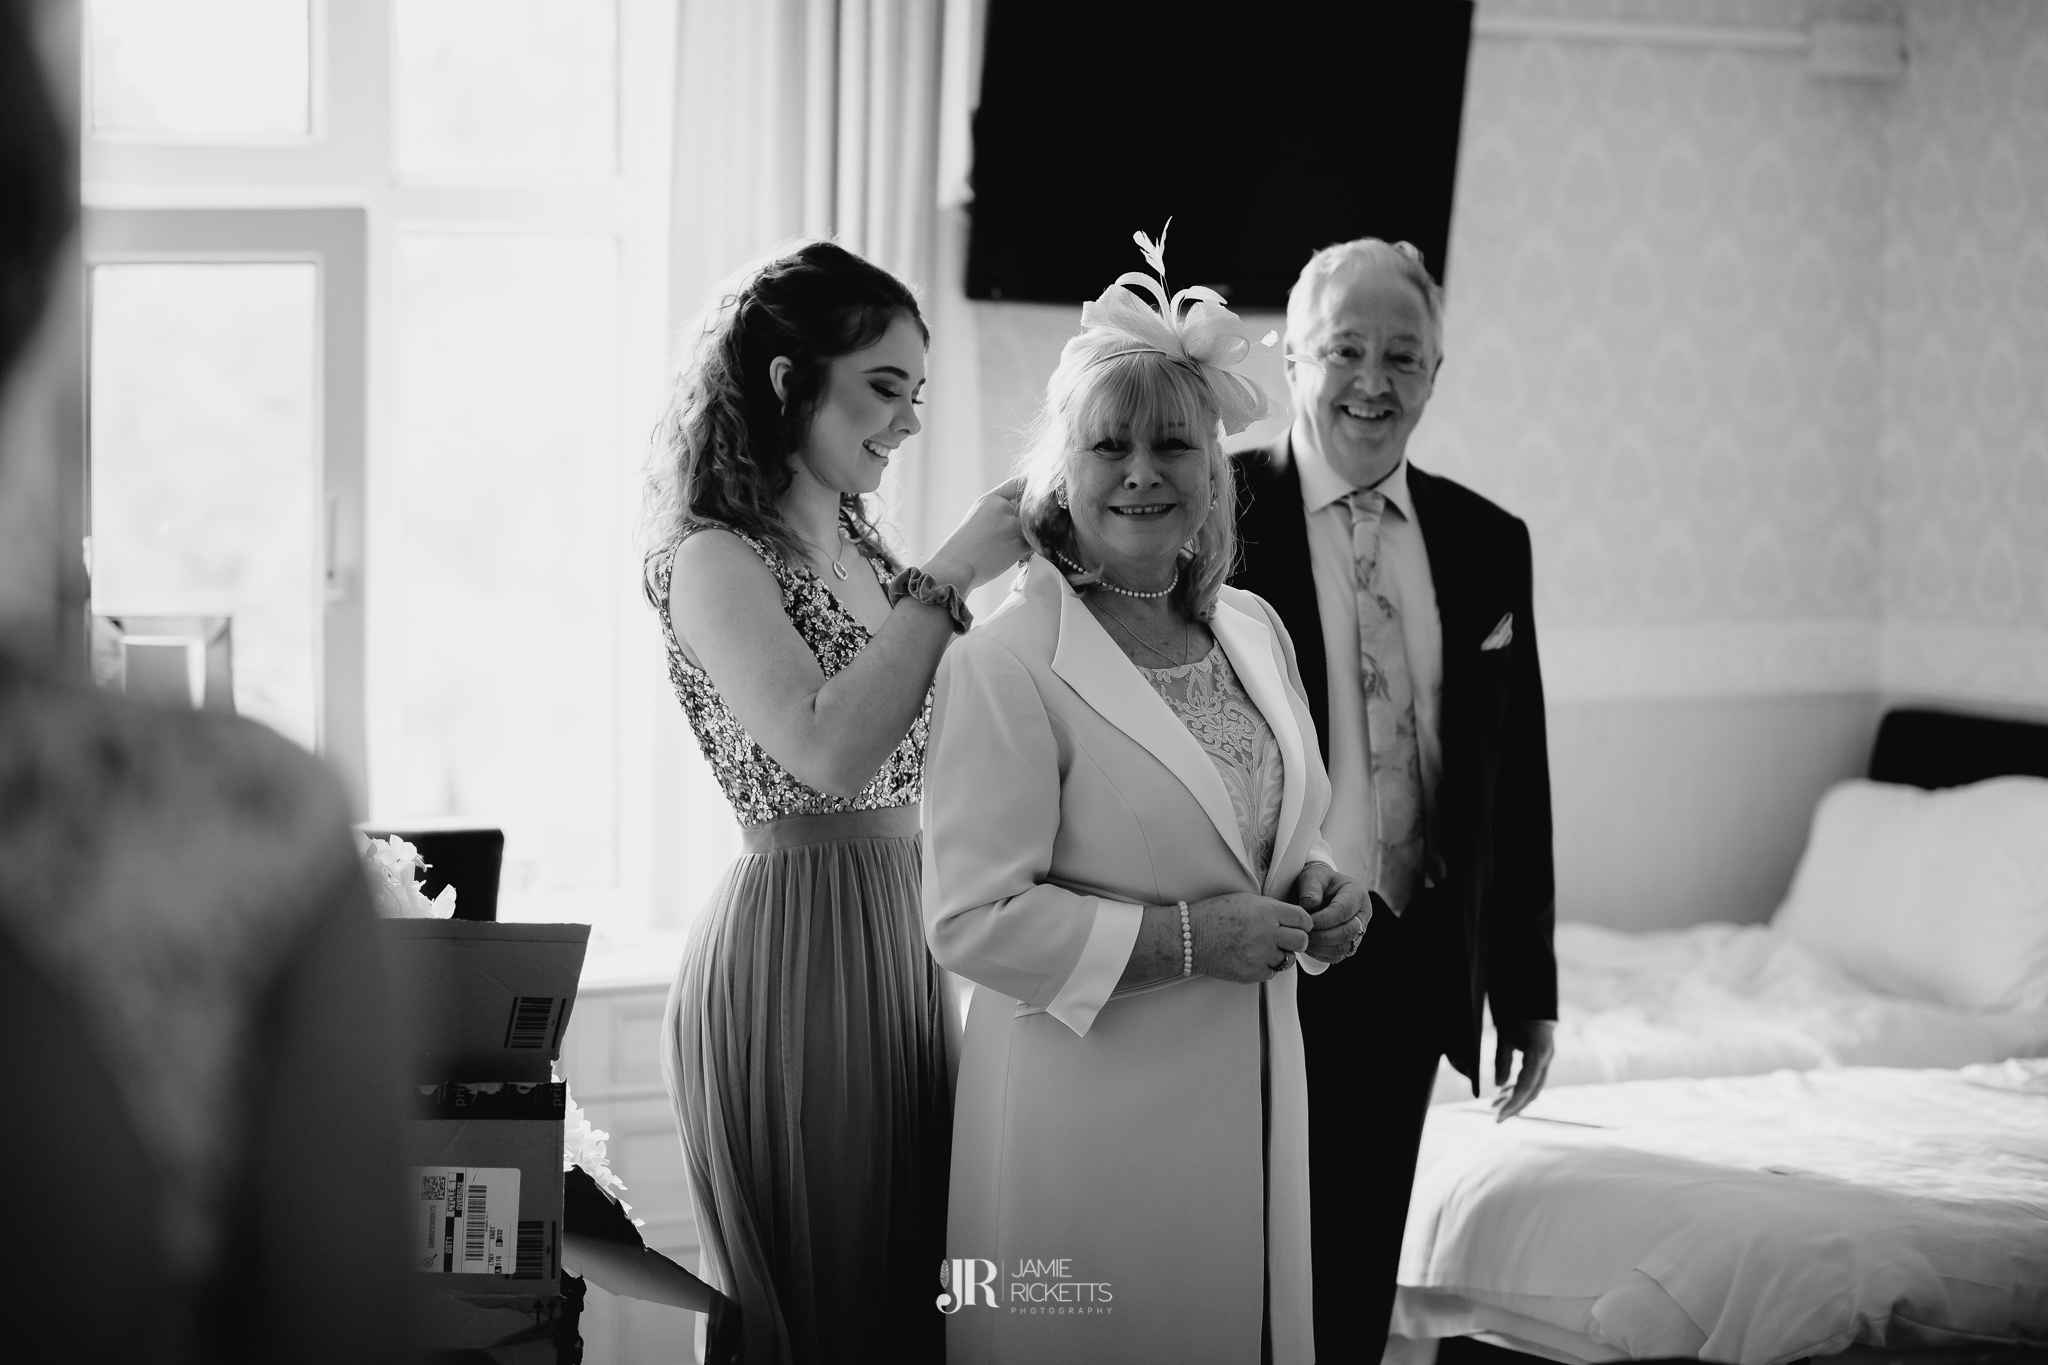 Wroxeter-Hotel-Wedding-Photography-In-Shropshire-By-Shropshire-Wedding-Photographer-Jamie-Ricketts-043.JPG